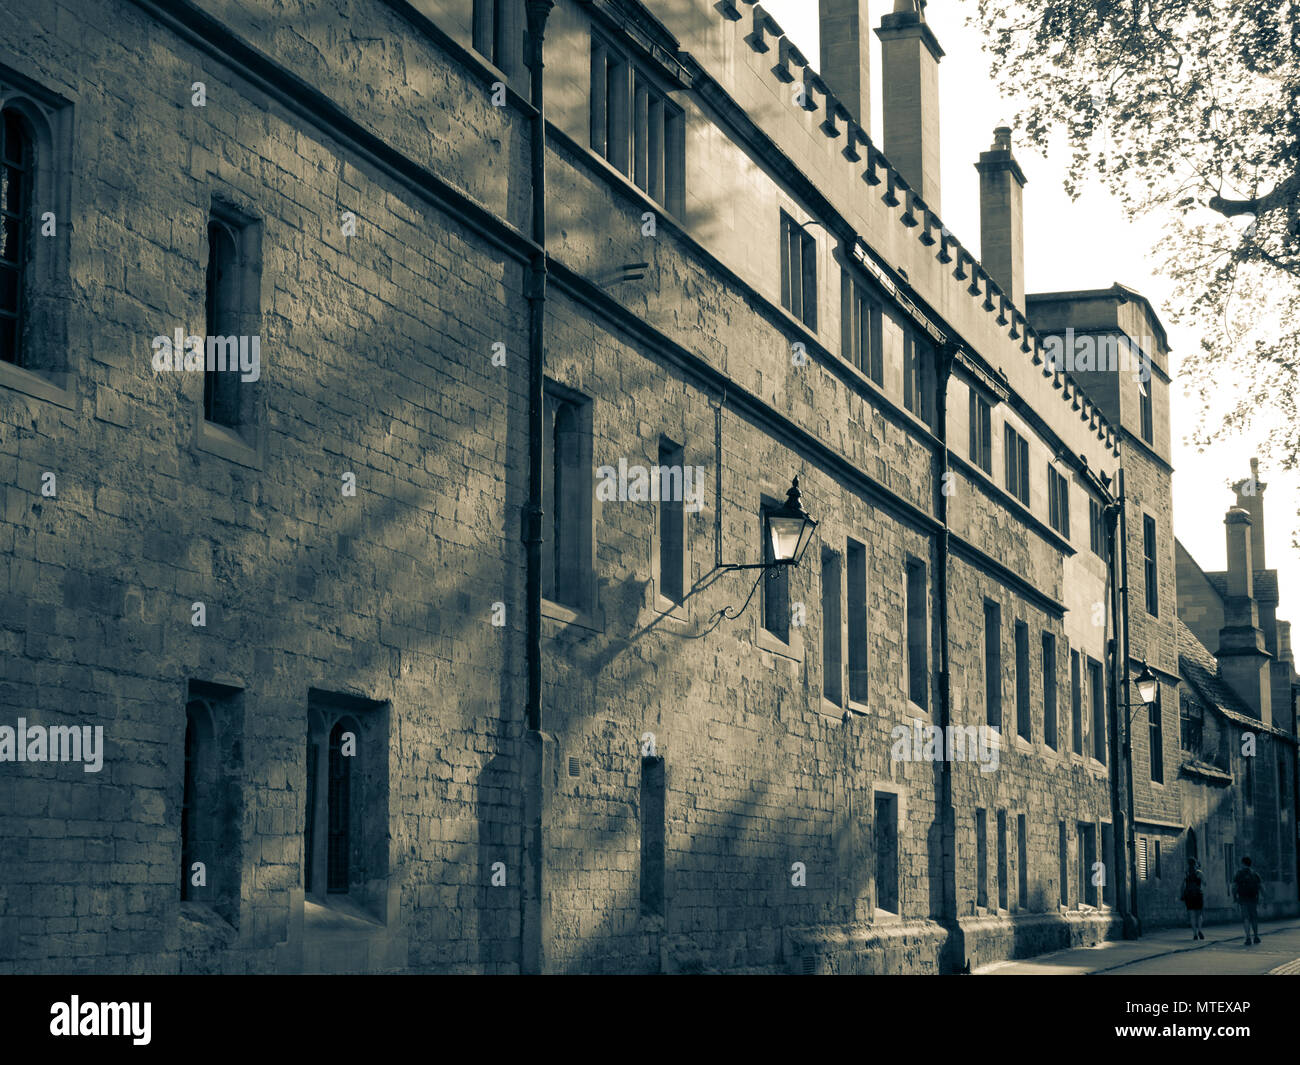 Black and White Image of Brasenose Ln, Oxford University, Oxford, Oxfordshire, England, UK, GB. - Stock Image